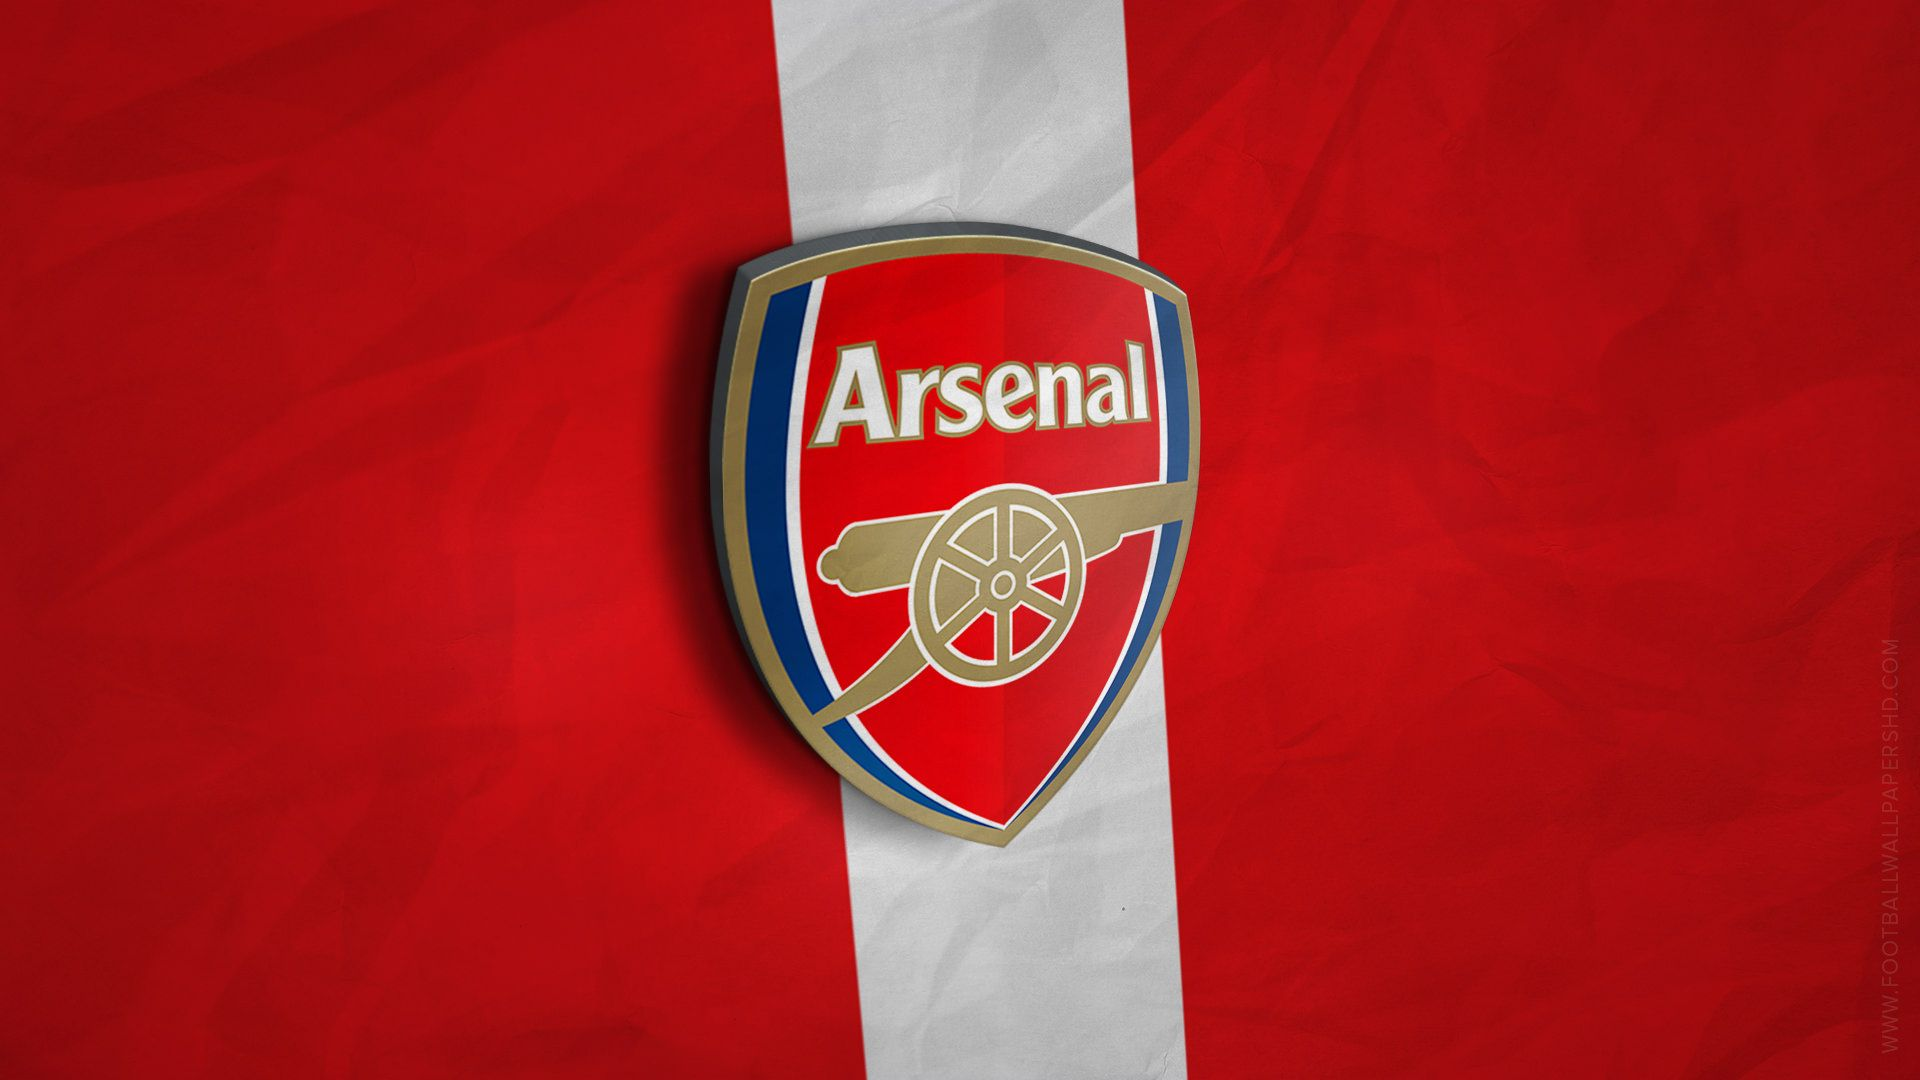 Arsenal Fc 3d Wallpapers Arsenal 3d Logo Wallpaper Football Wallpapers Hd